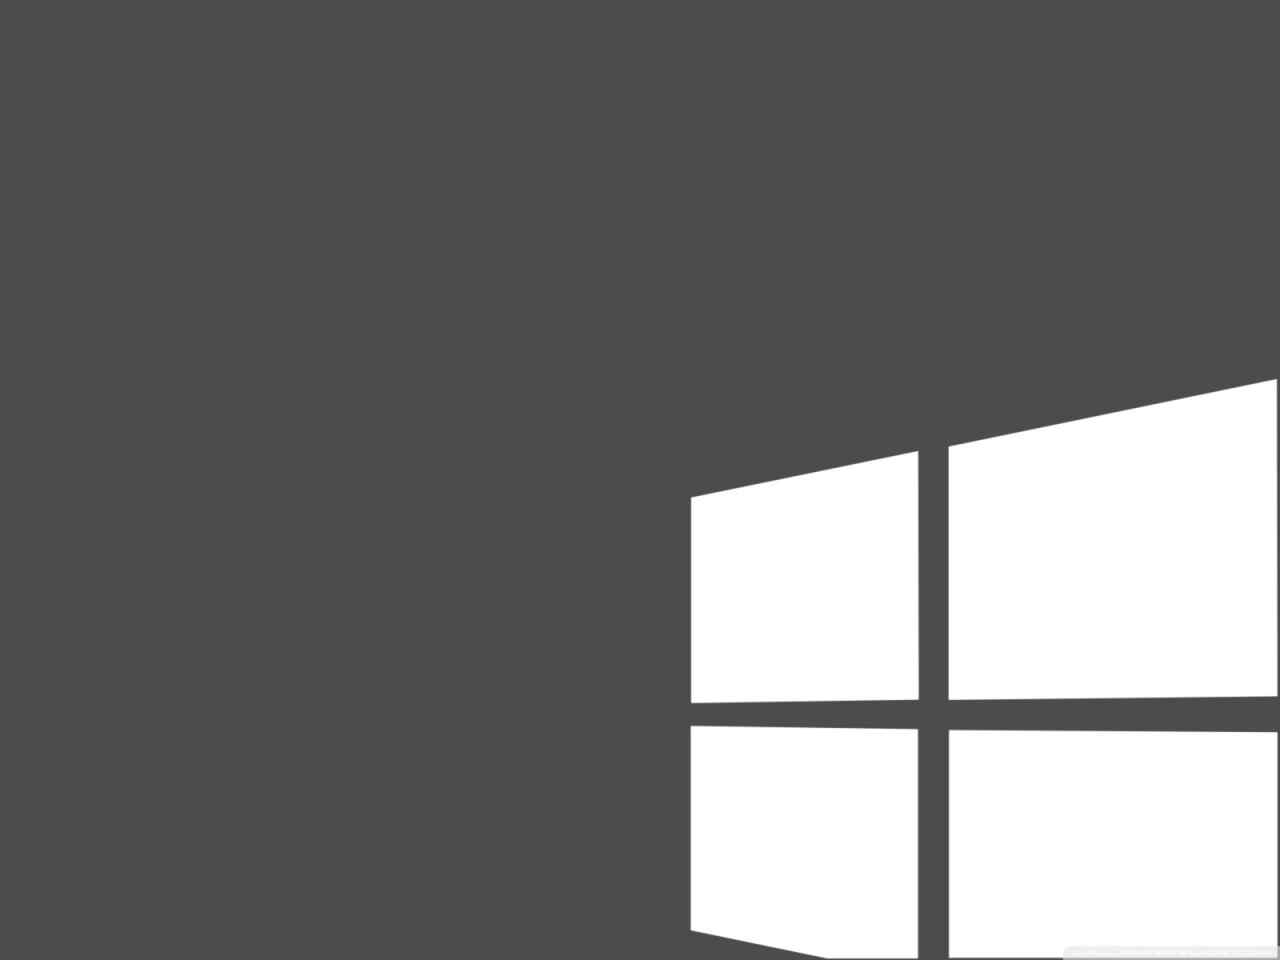 22+ Windows 10 Wallpapers, Backgrounds, Images